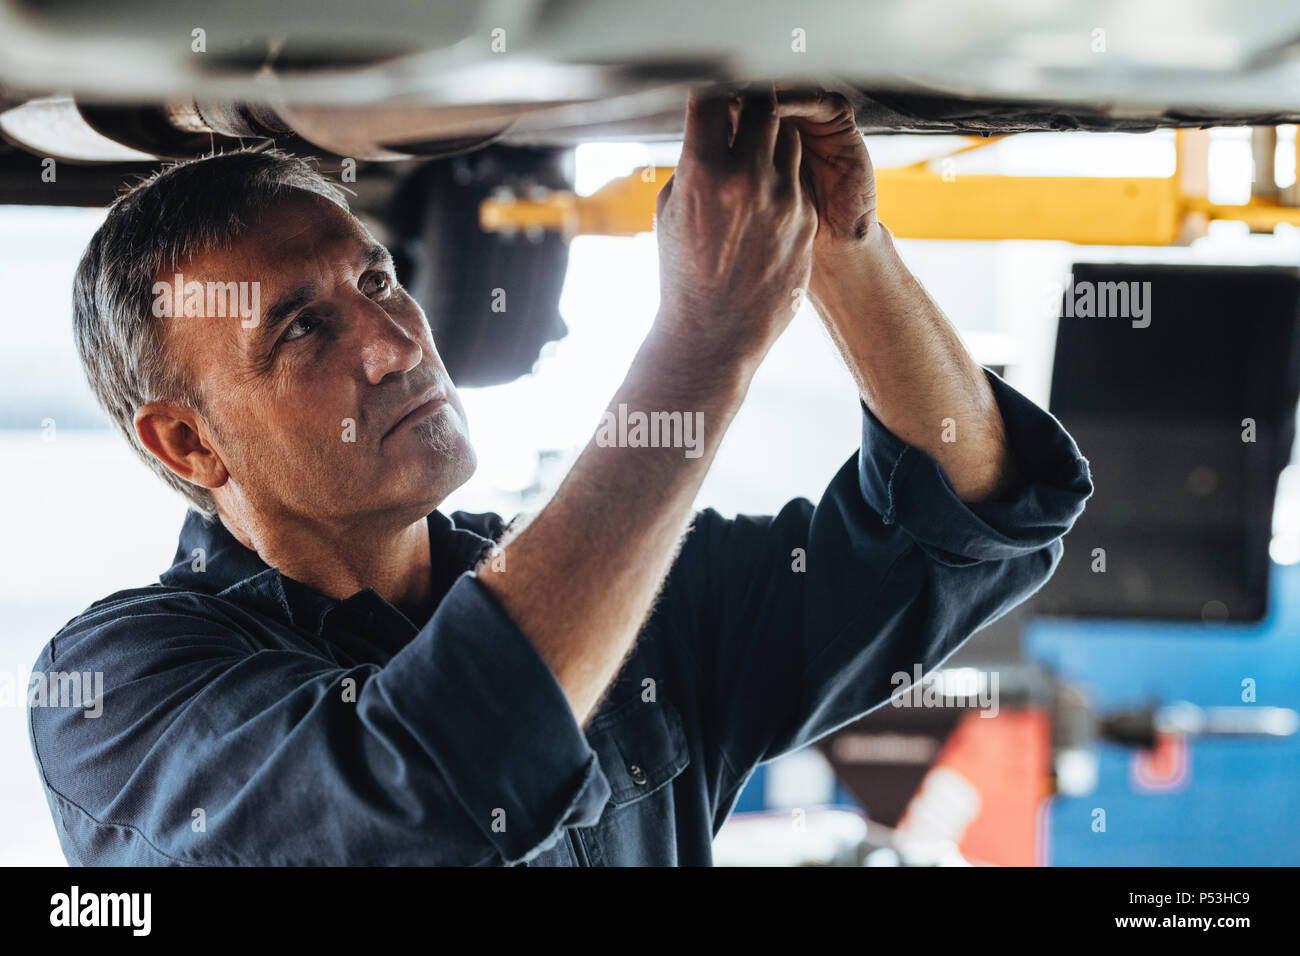 Car mechanic repairing a lifted car in garage. Auto repair men fixing a car in service station. - Stock Image